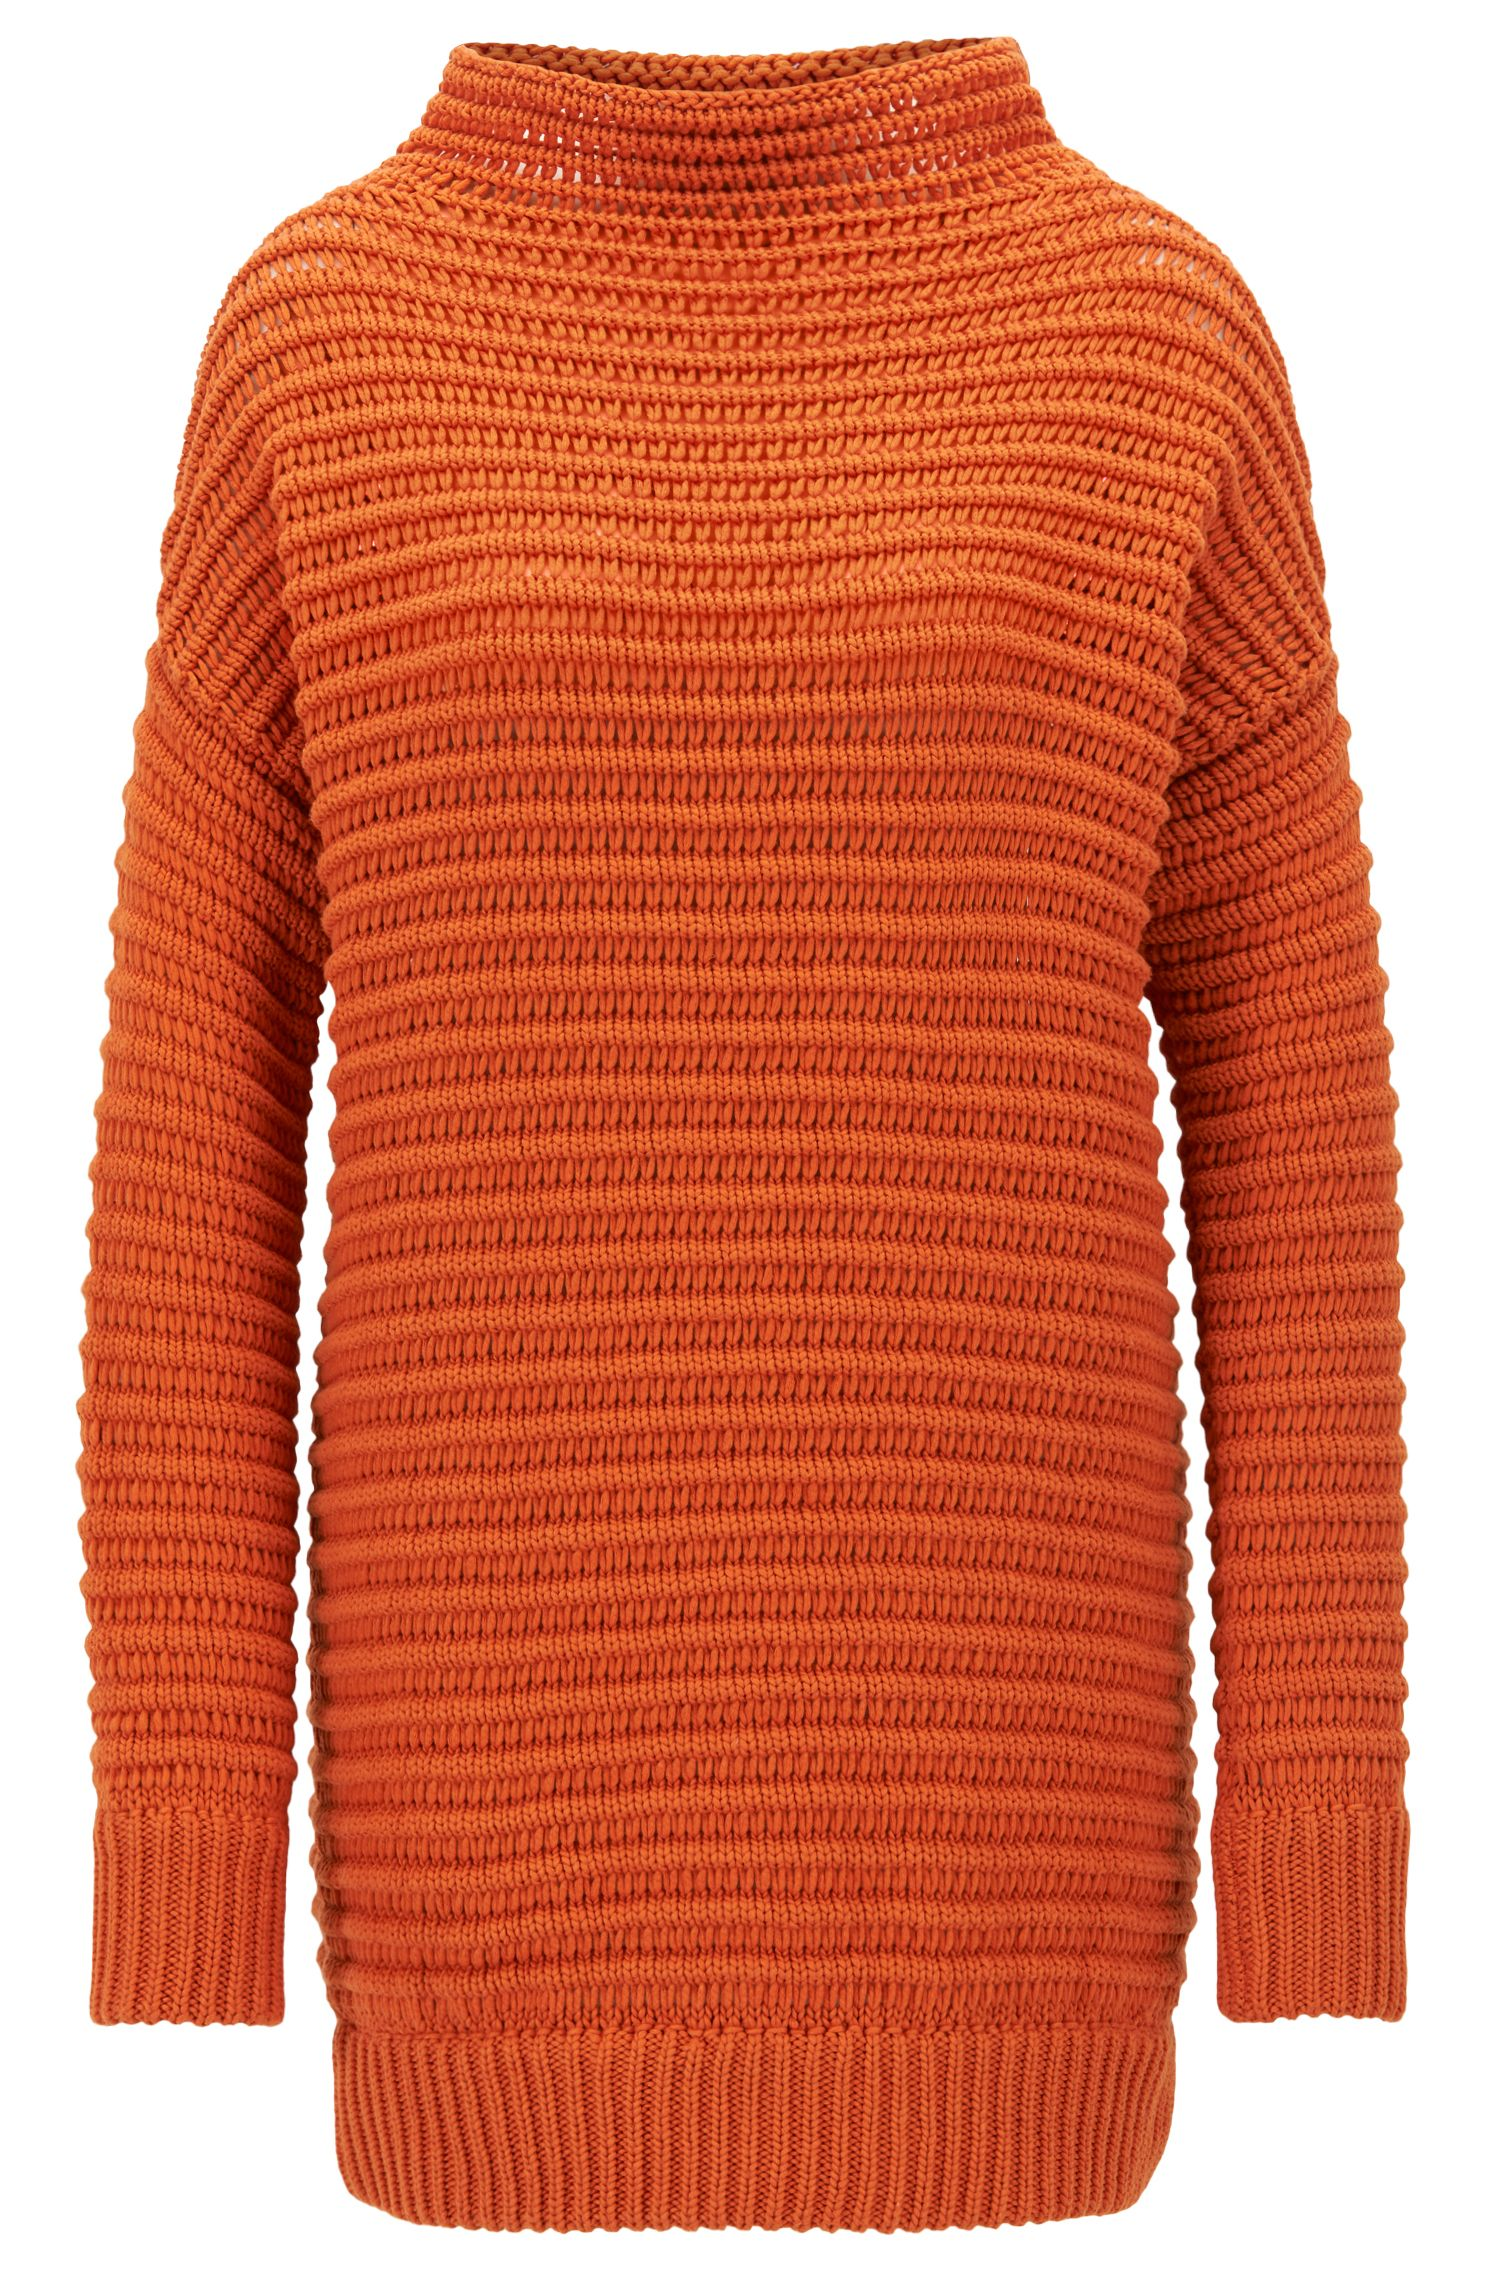 Oversized cotton sweater with three-dimensional structure